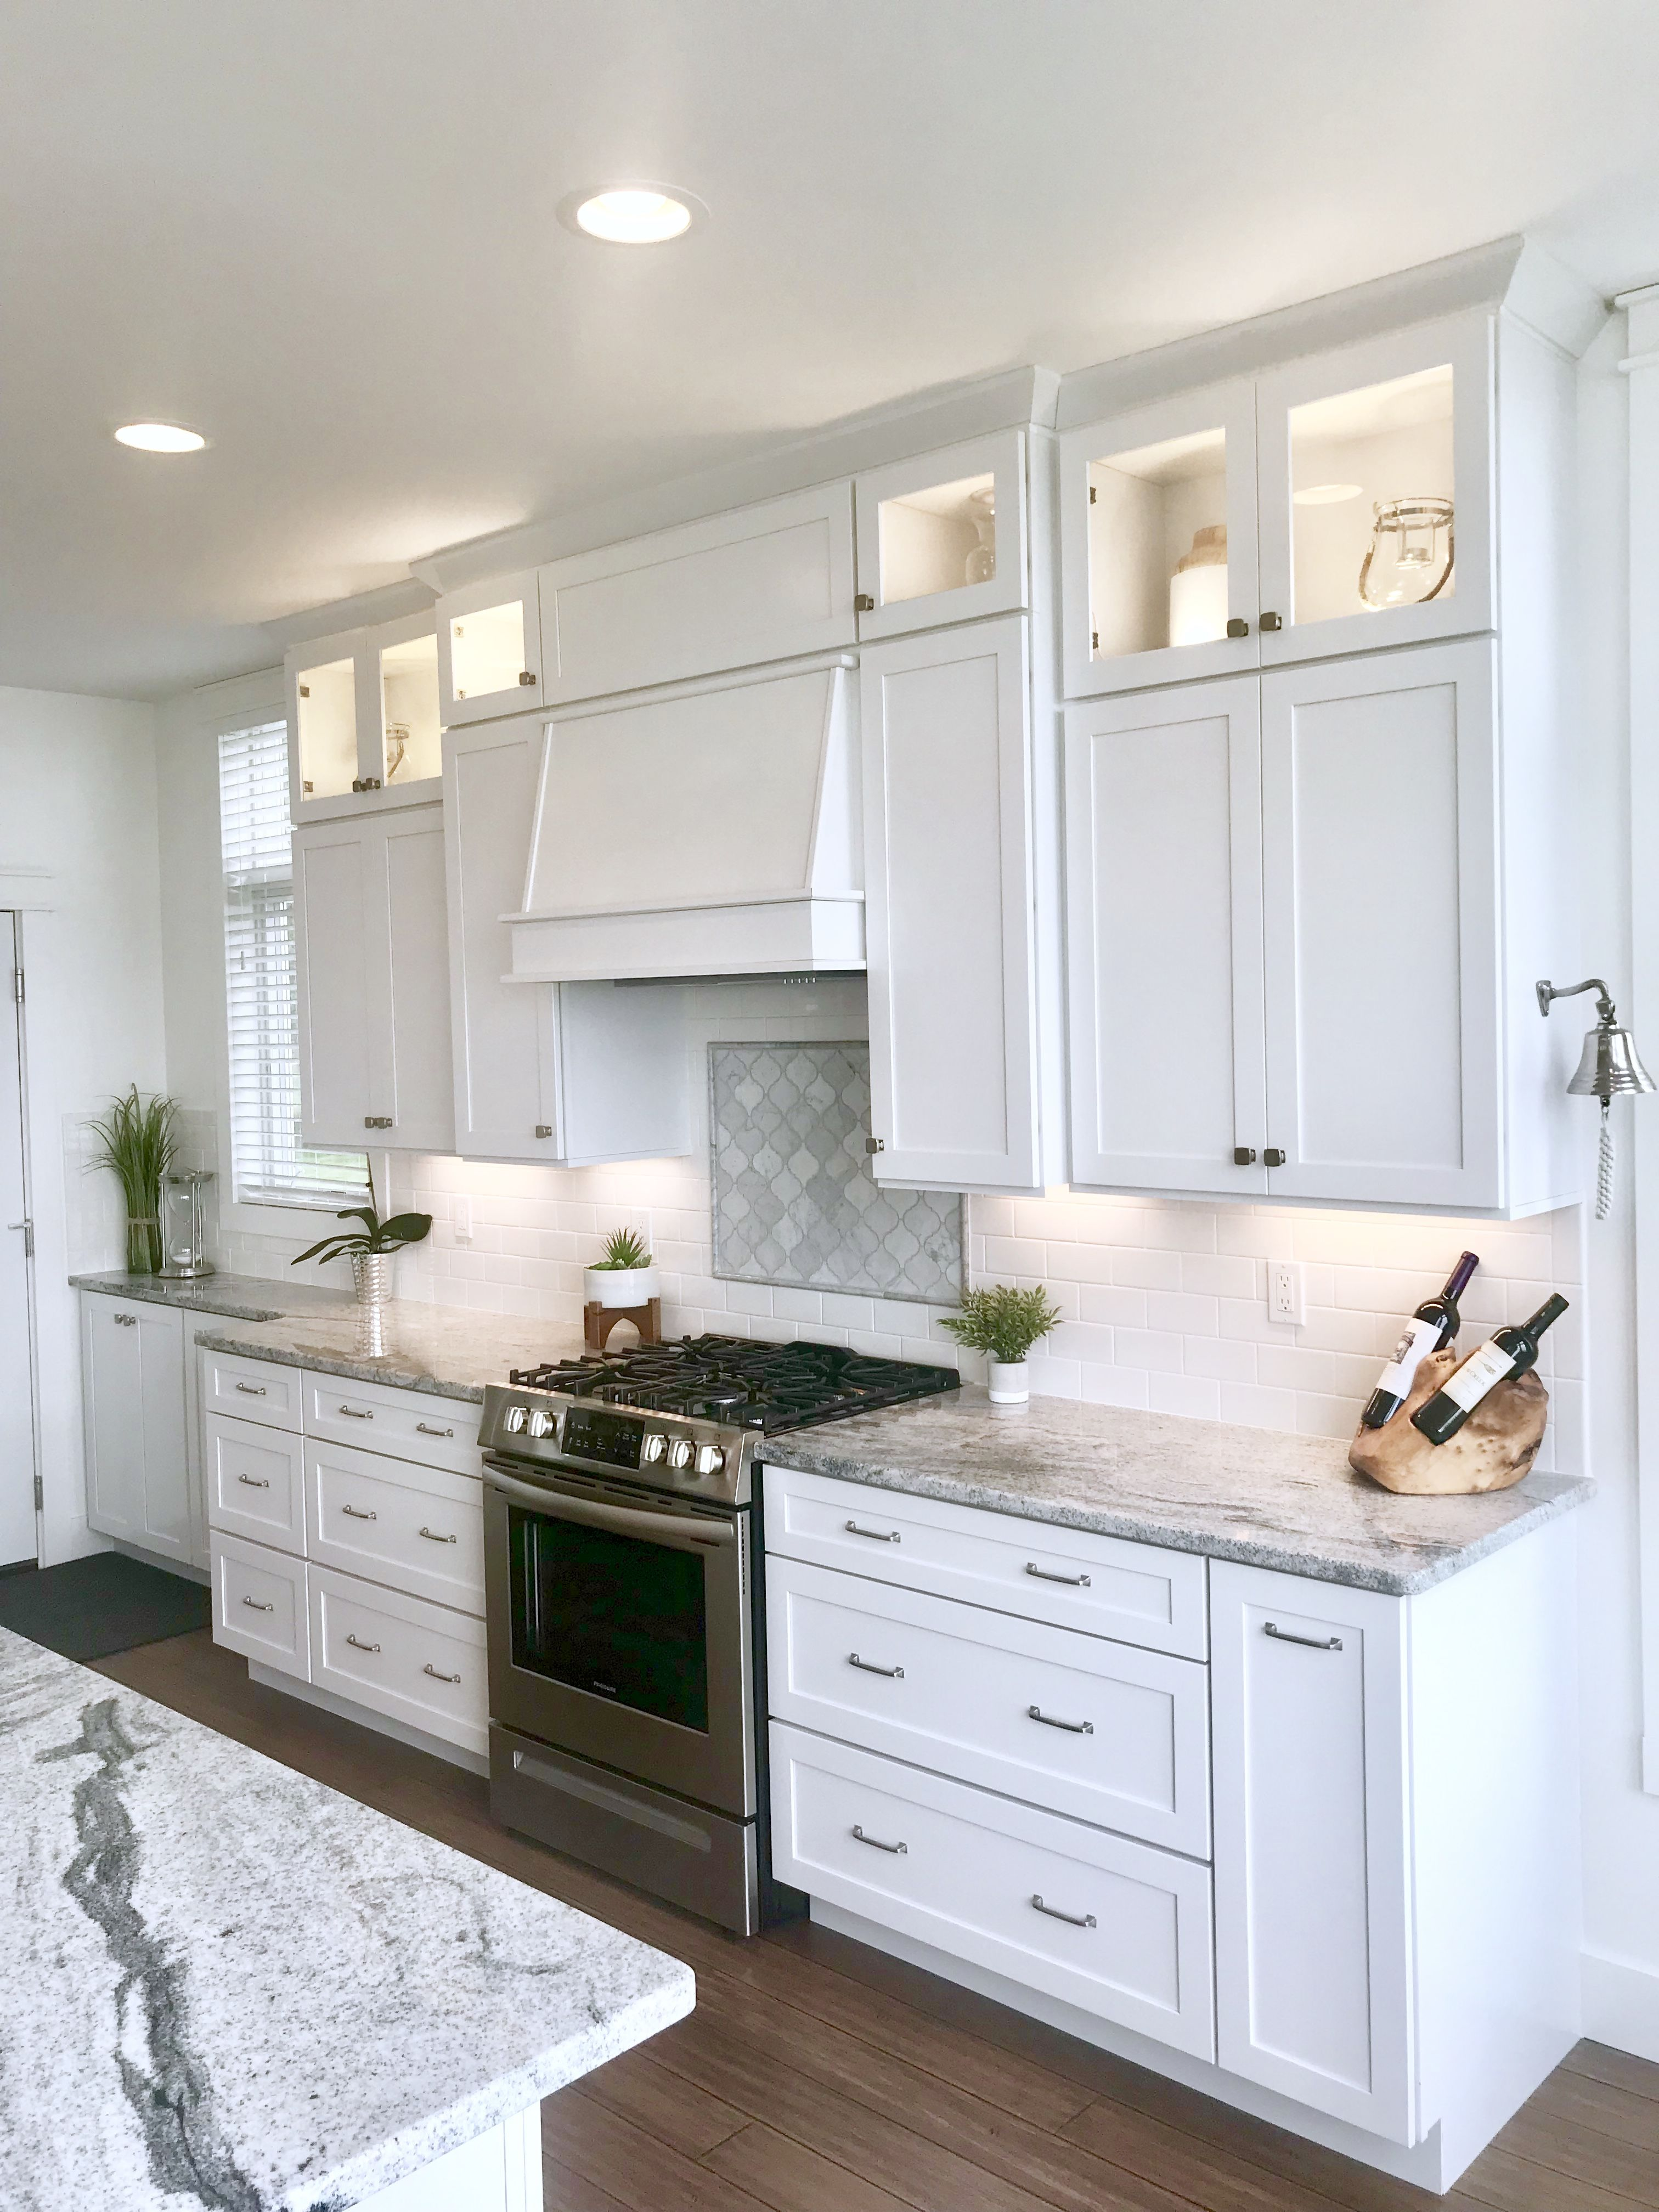 White Kitchen With Bamboo Wood Floor White Shaker Cabinets White Subway Tile With Arabesque Marbl Bamboo Wood Flooring White Shaker Cabinets Shaker Cabinets